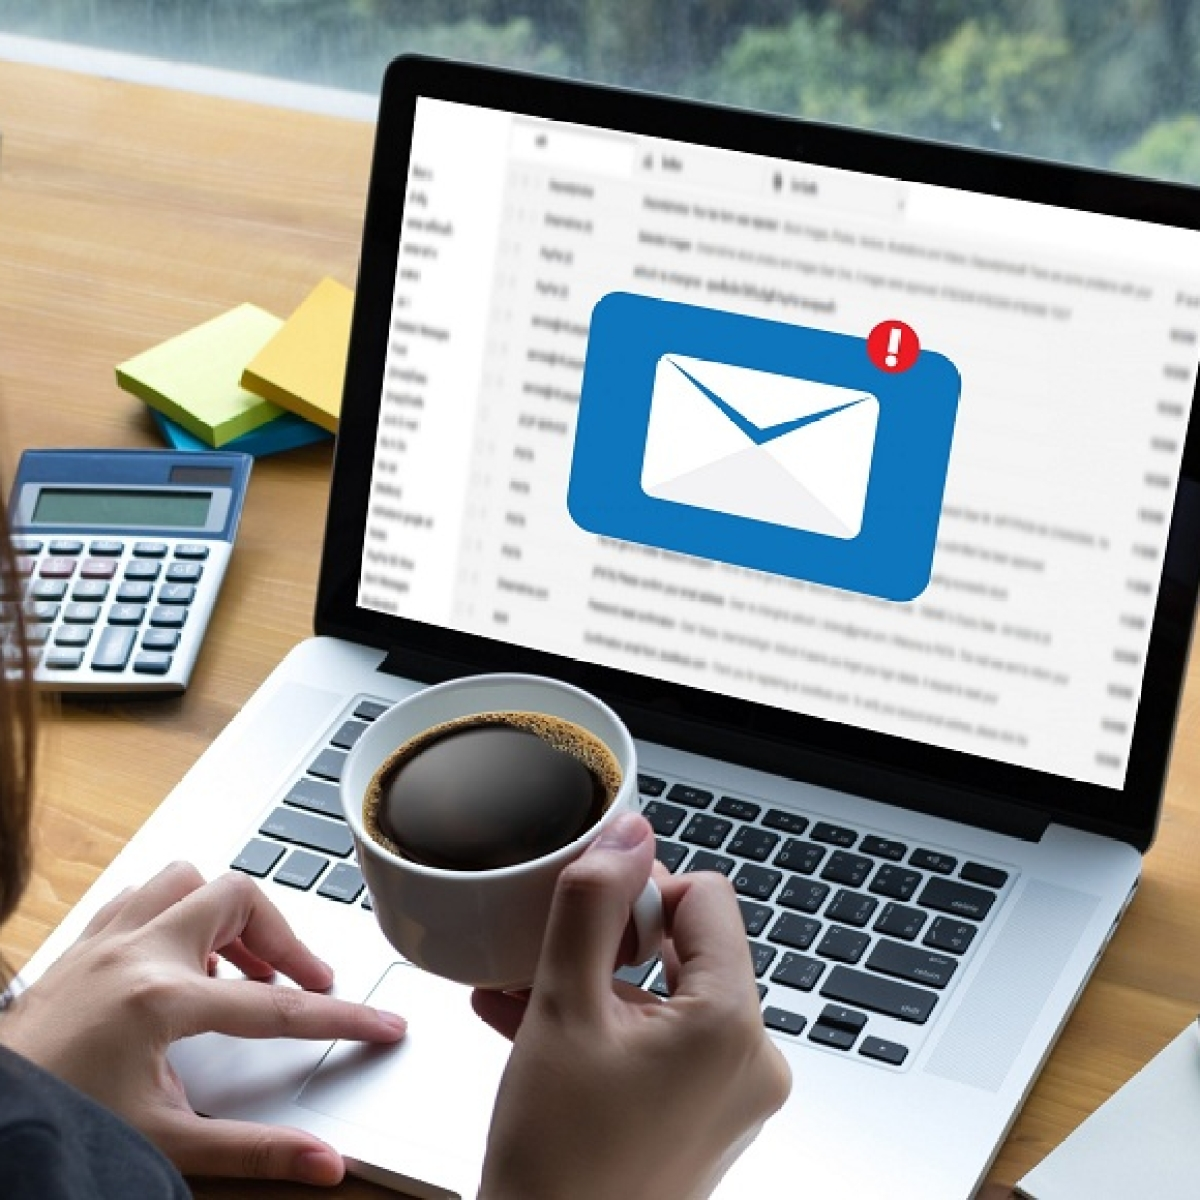 Where are phishing emails more likely to originate from?